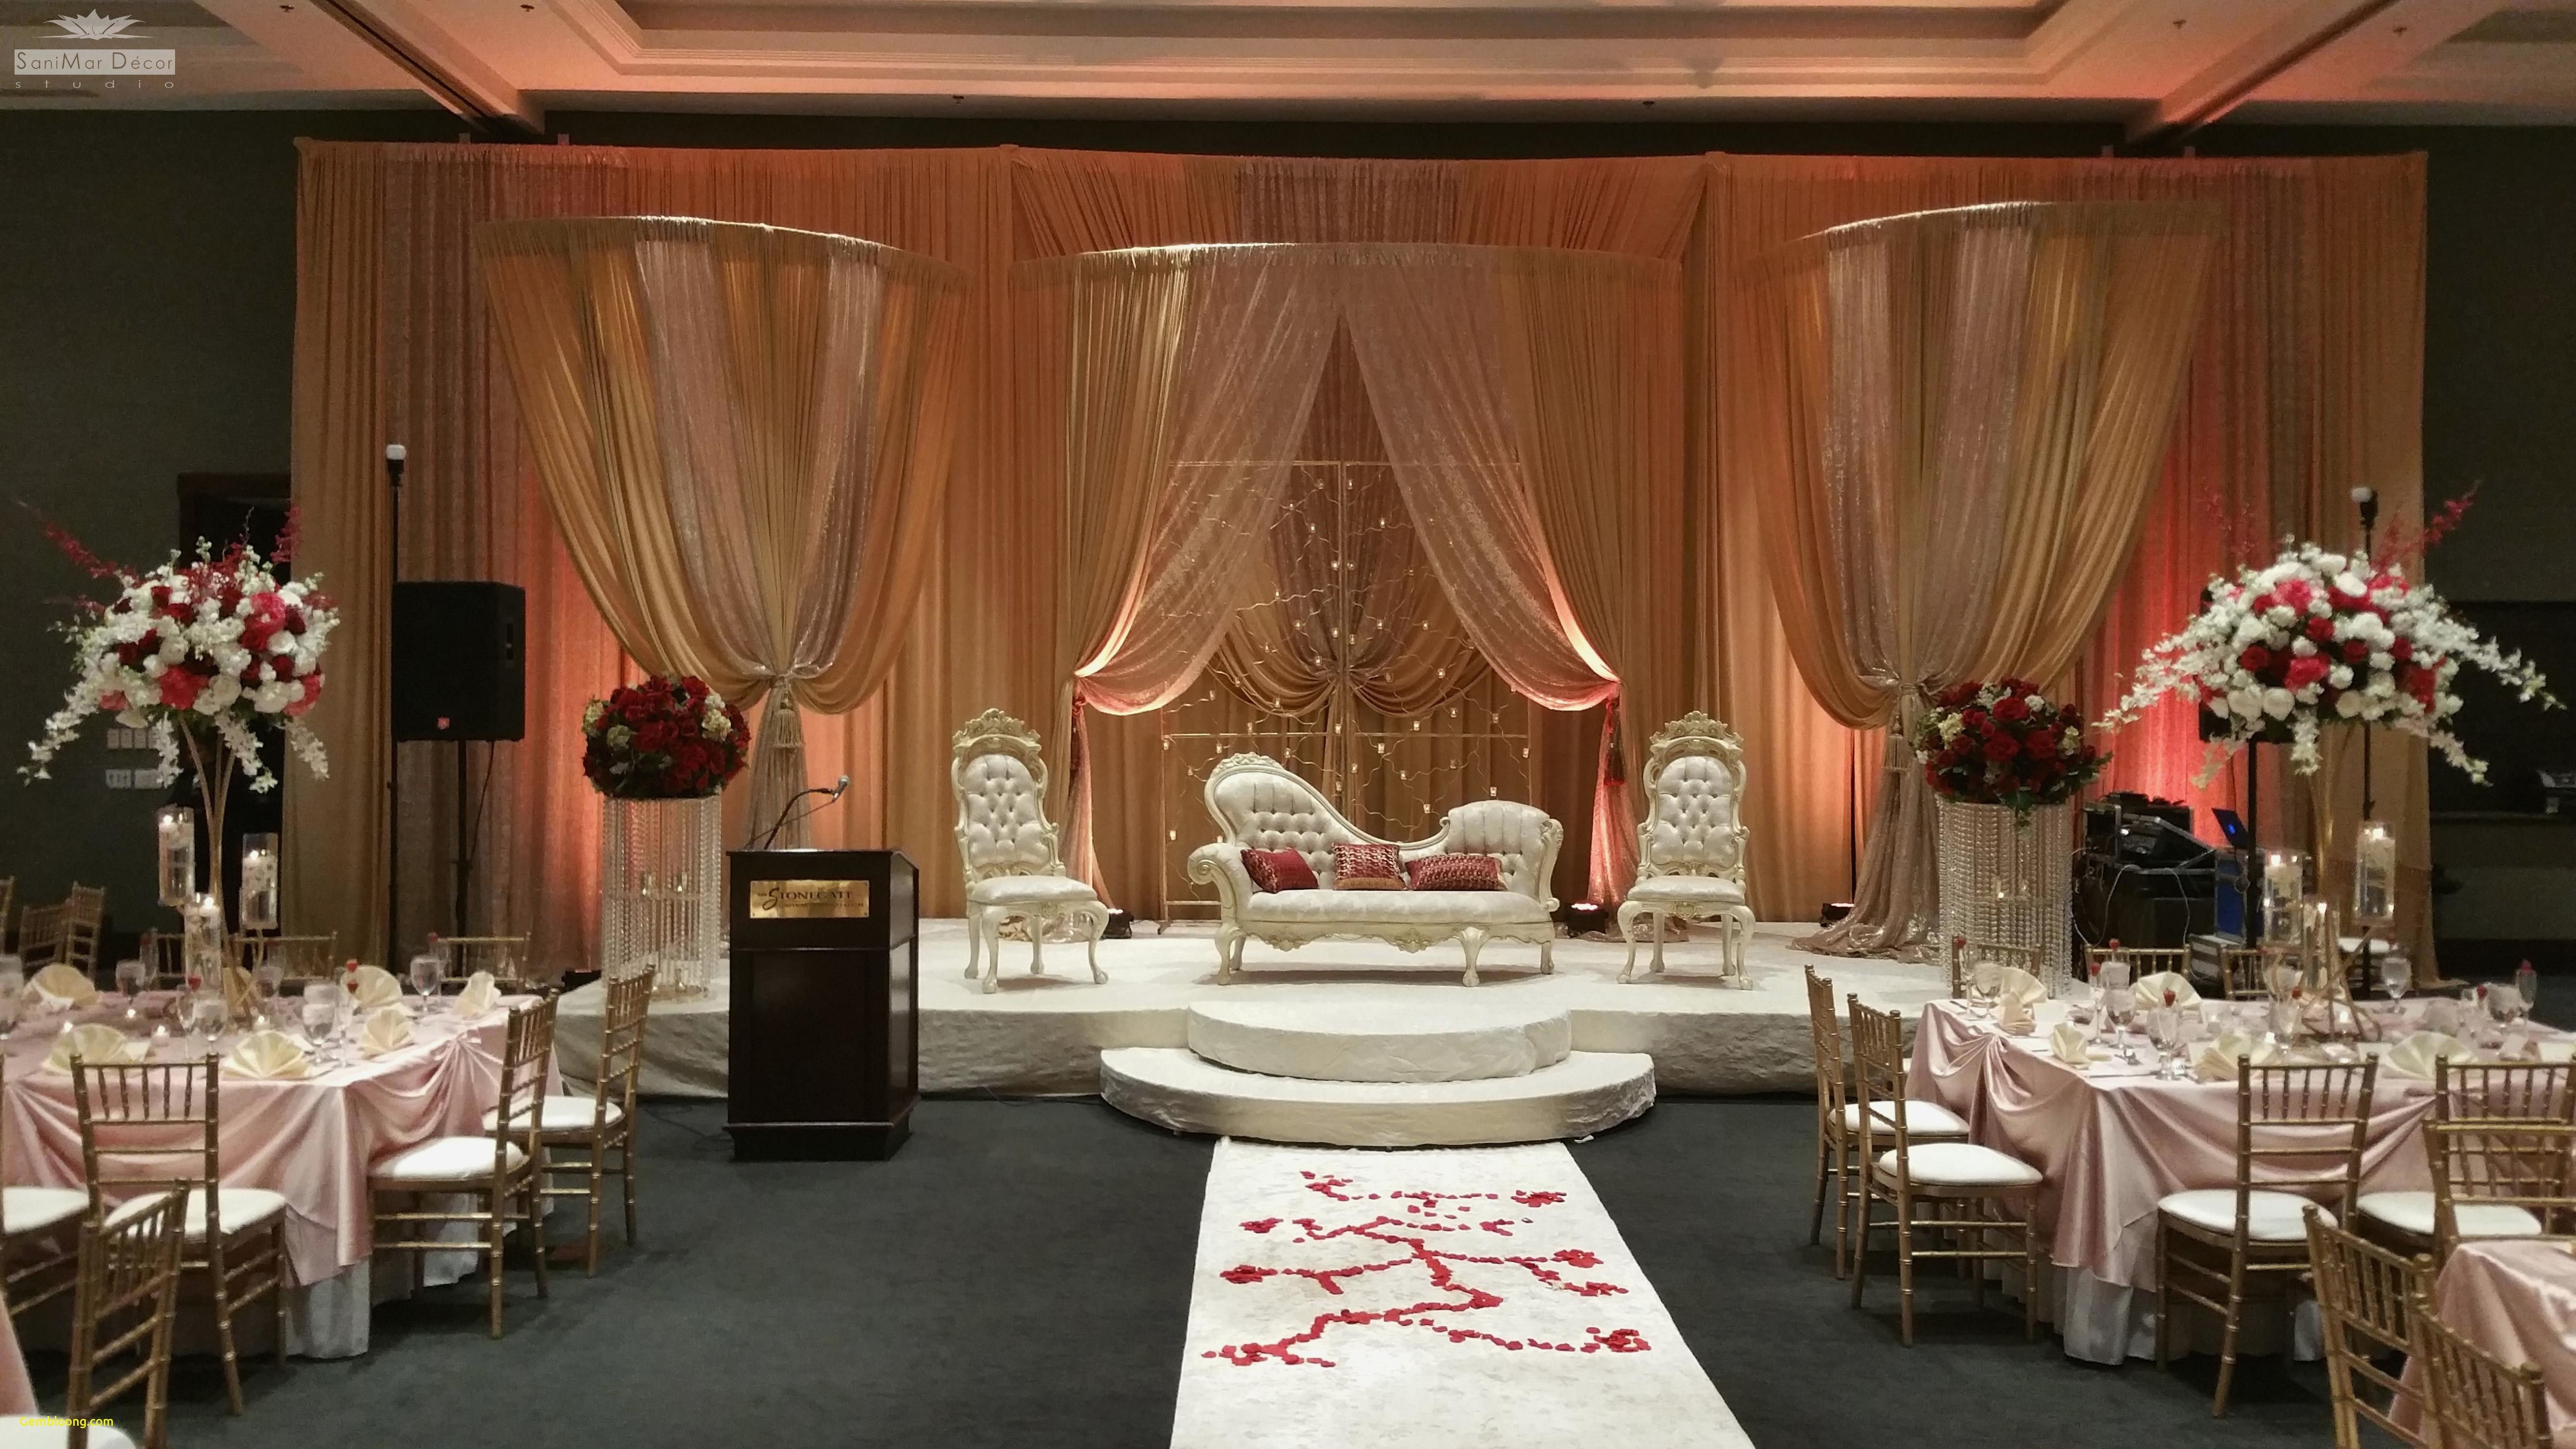 Wedding decoration ideas at home  Fall Wedding Decoration u How to Capture the Colors Of the Season